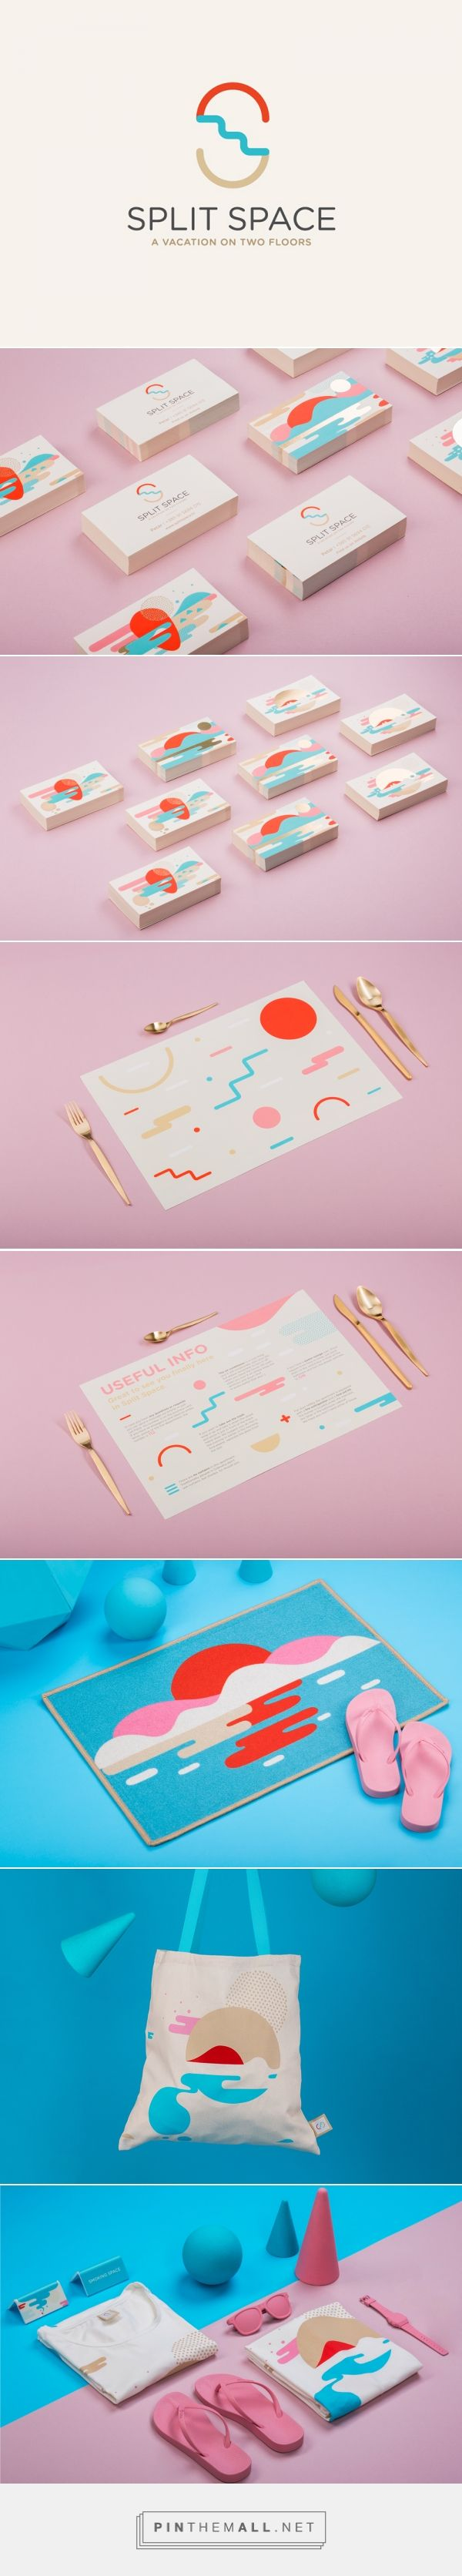 Split Space on Behance | Fivestar Branding – Design and Branding Agency & Inspiration Gallery